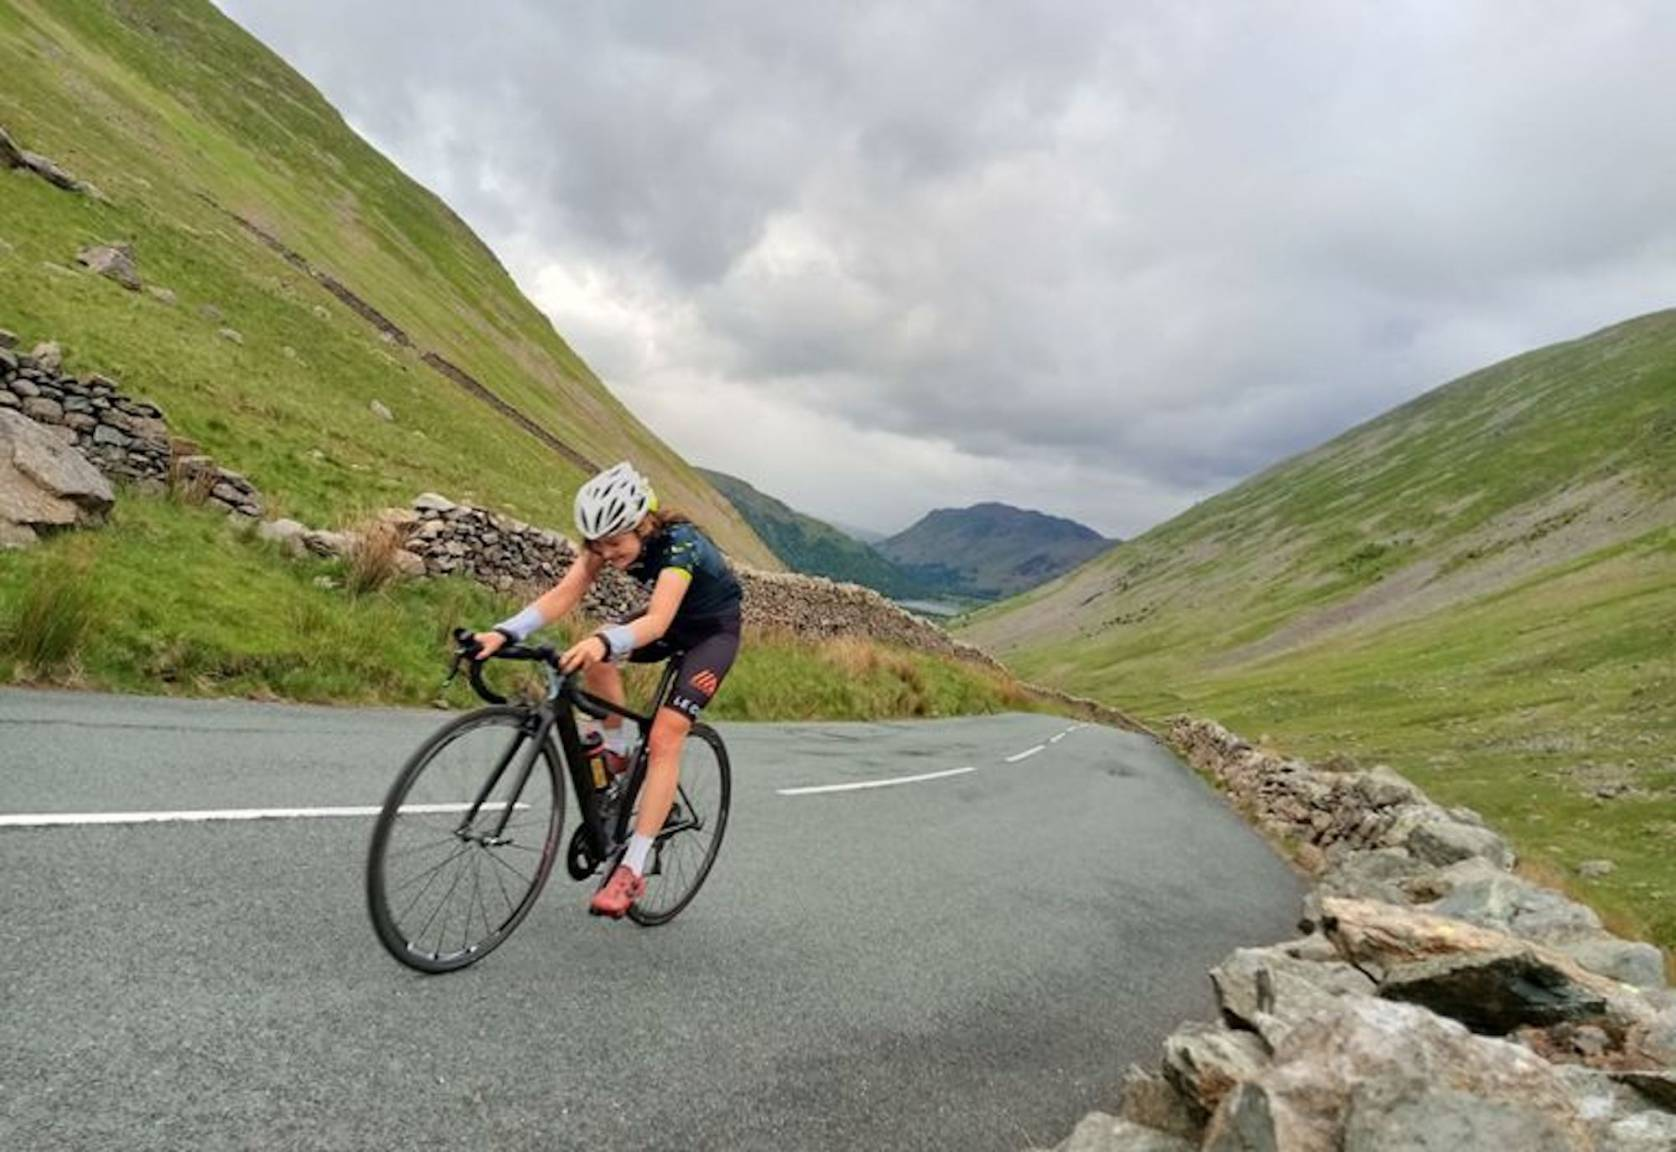 cyclist hannah rhodes-patterson riding hard up paved mountain road